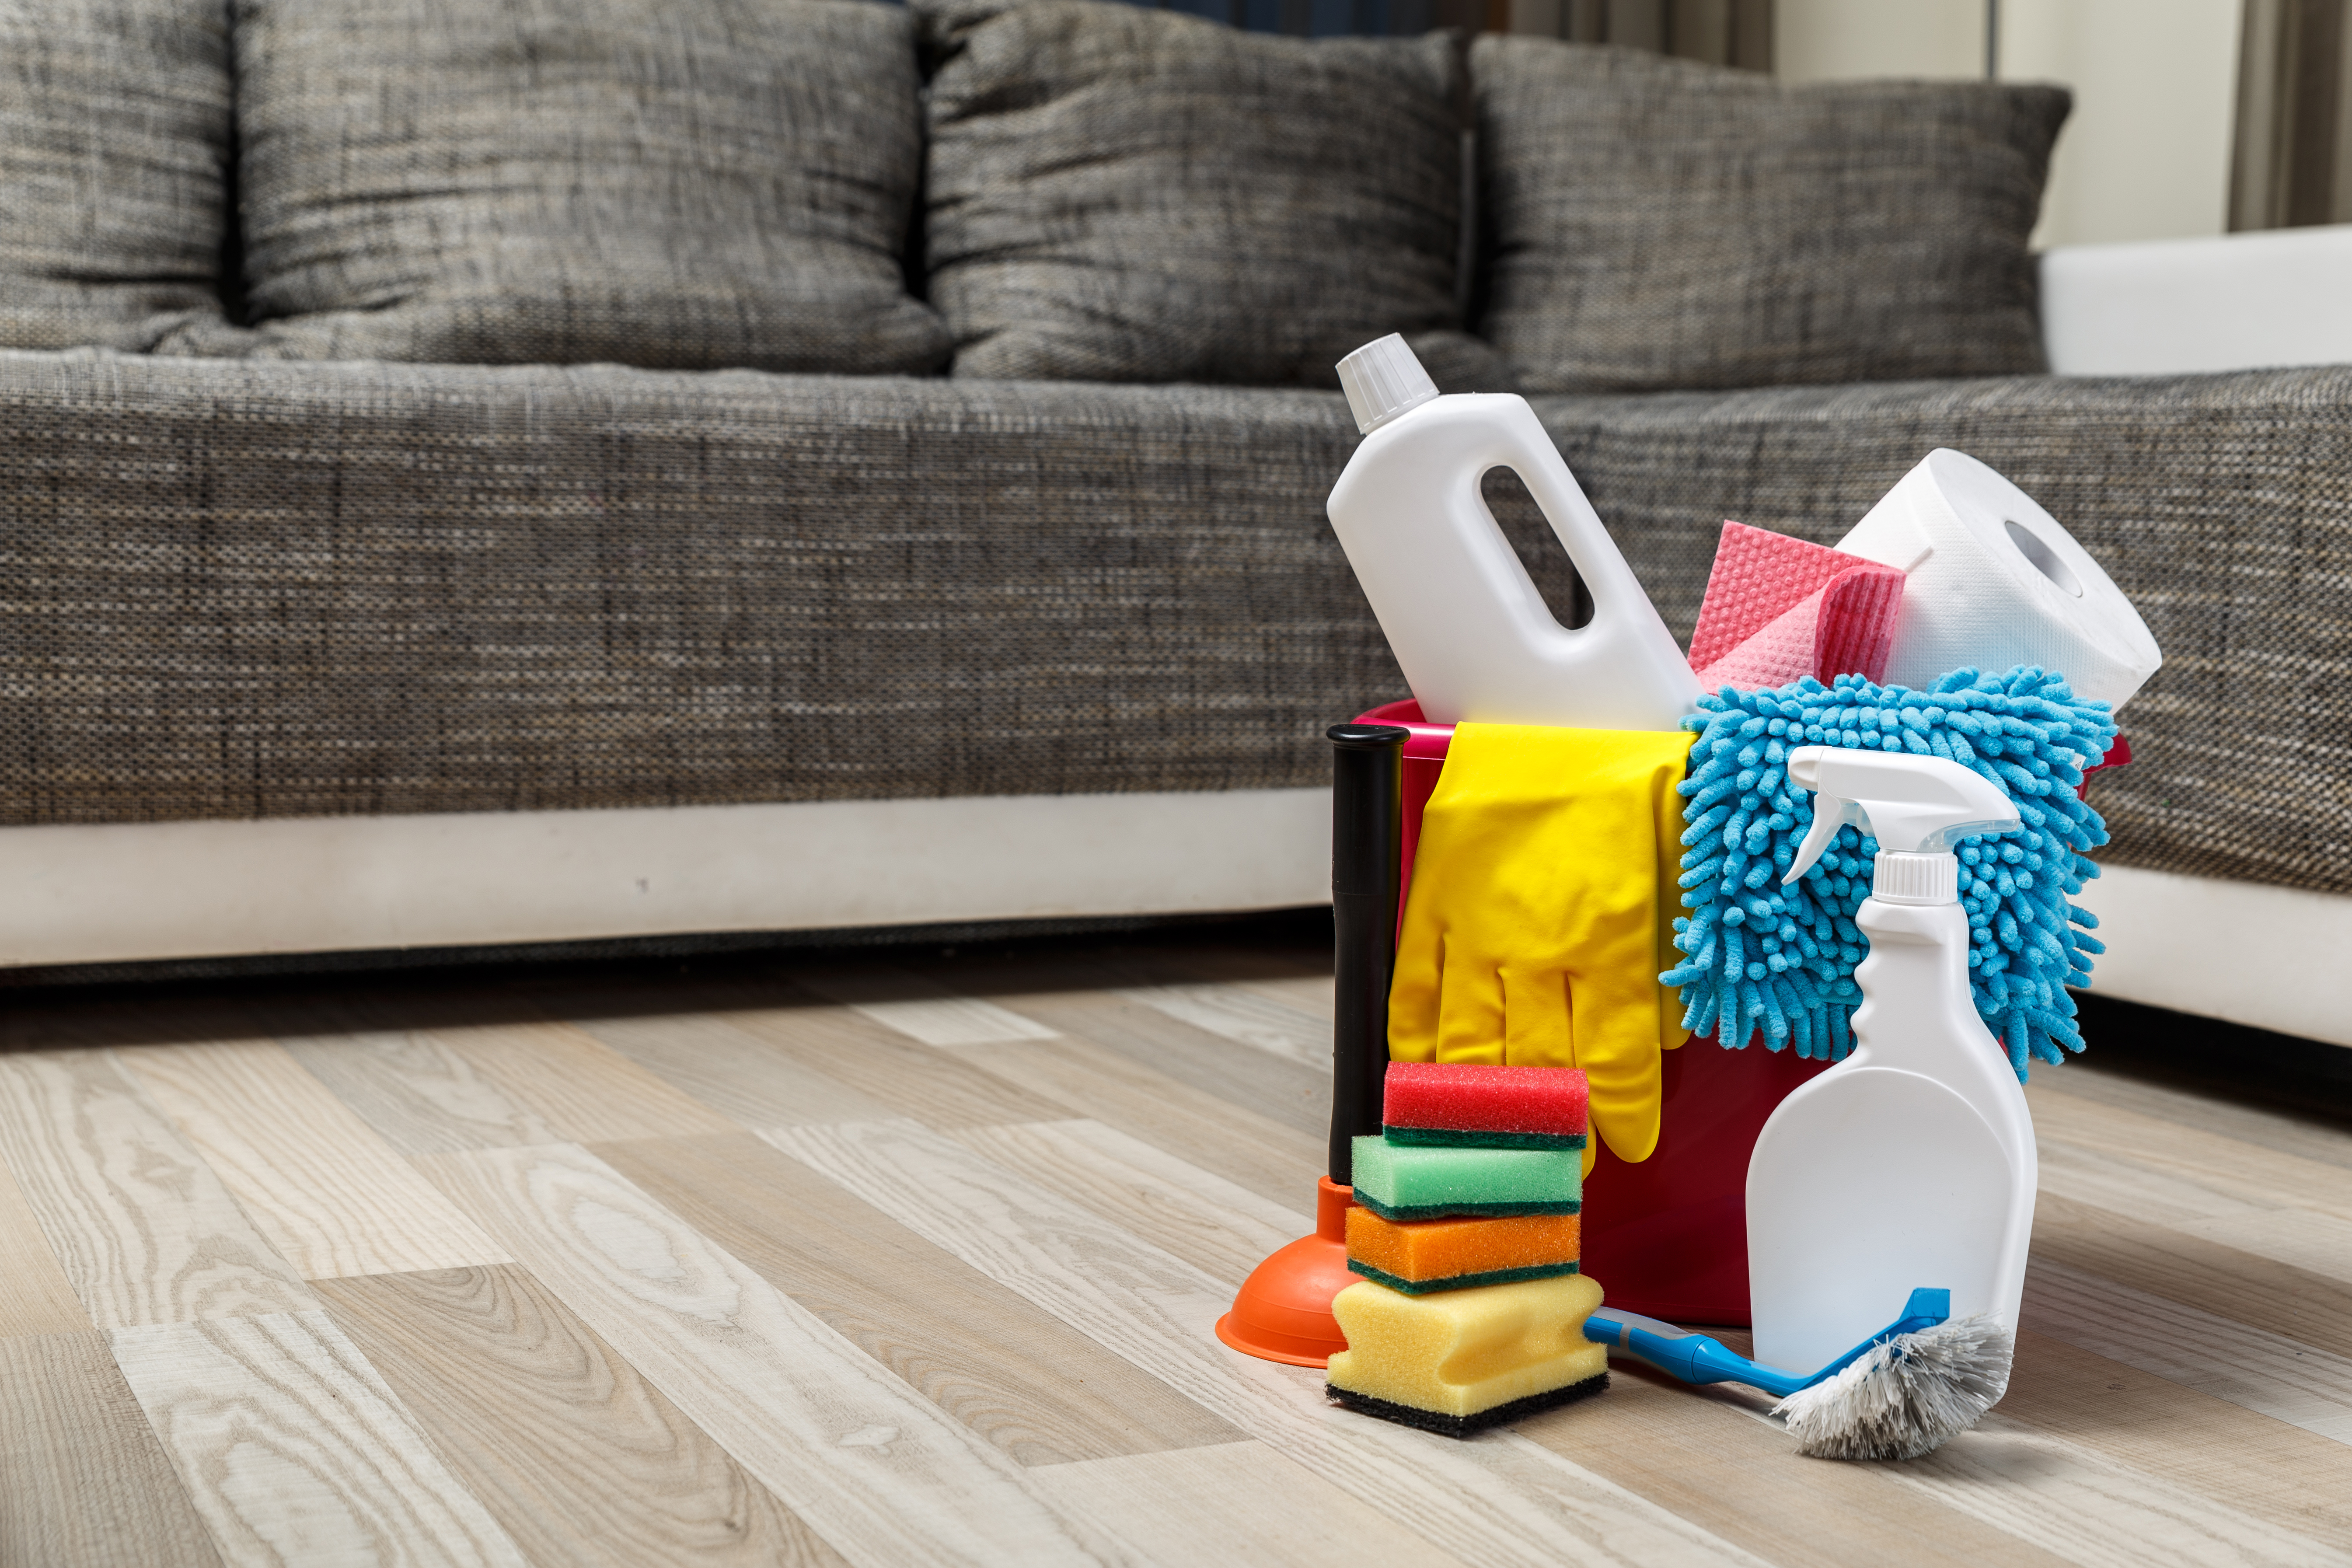 How To Clean Urine Out Of Couch Cushions | Hunker